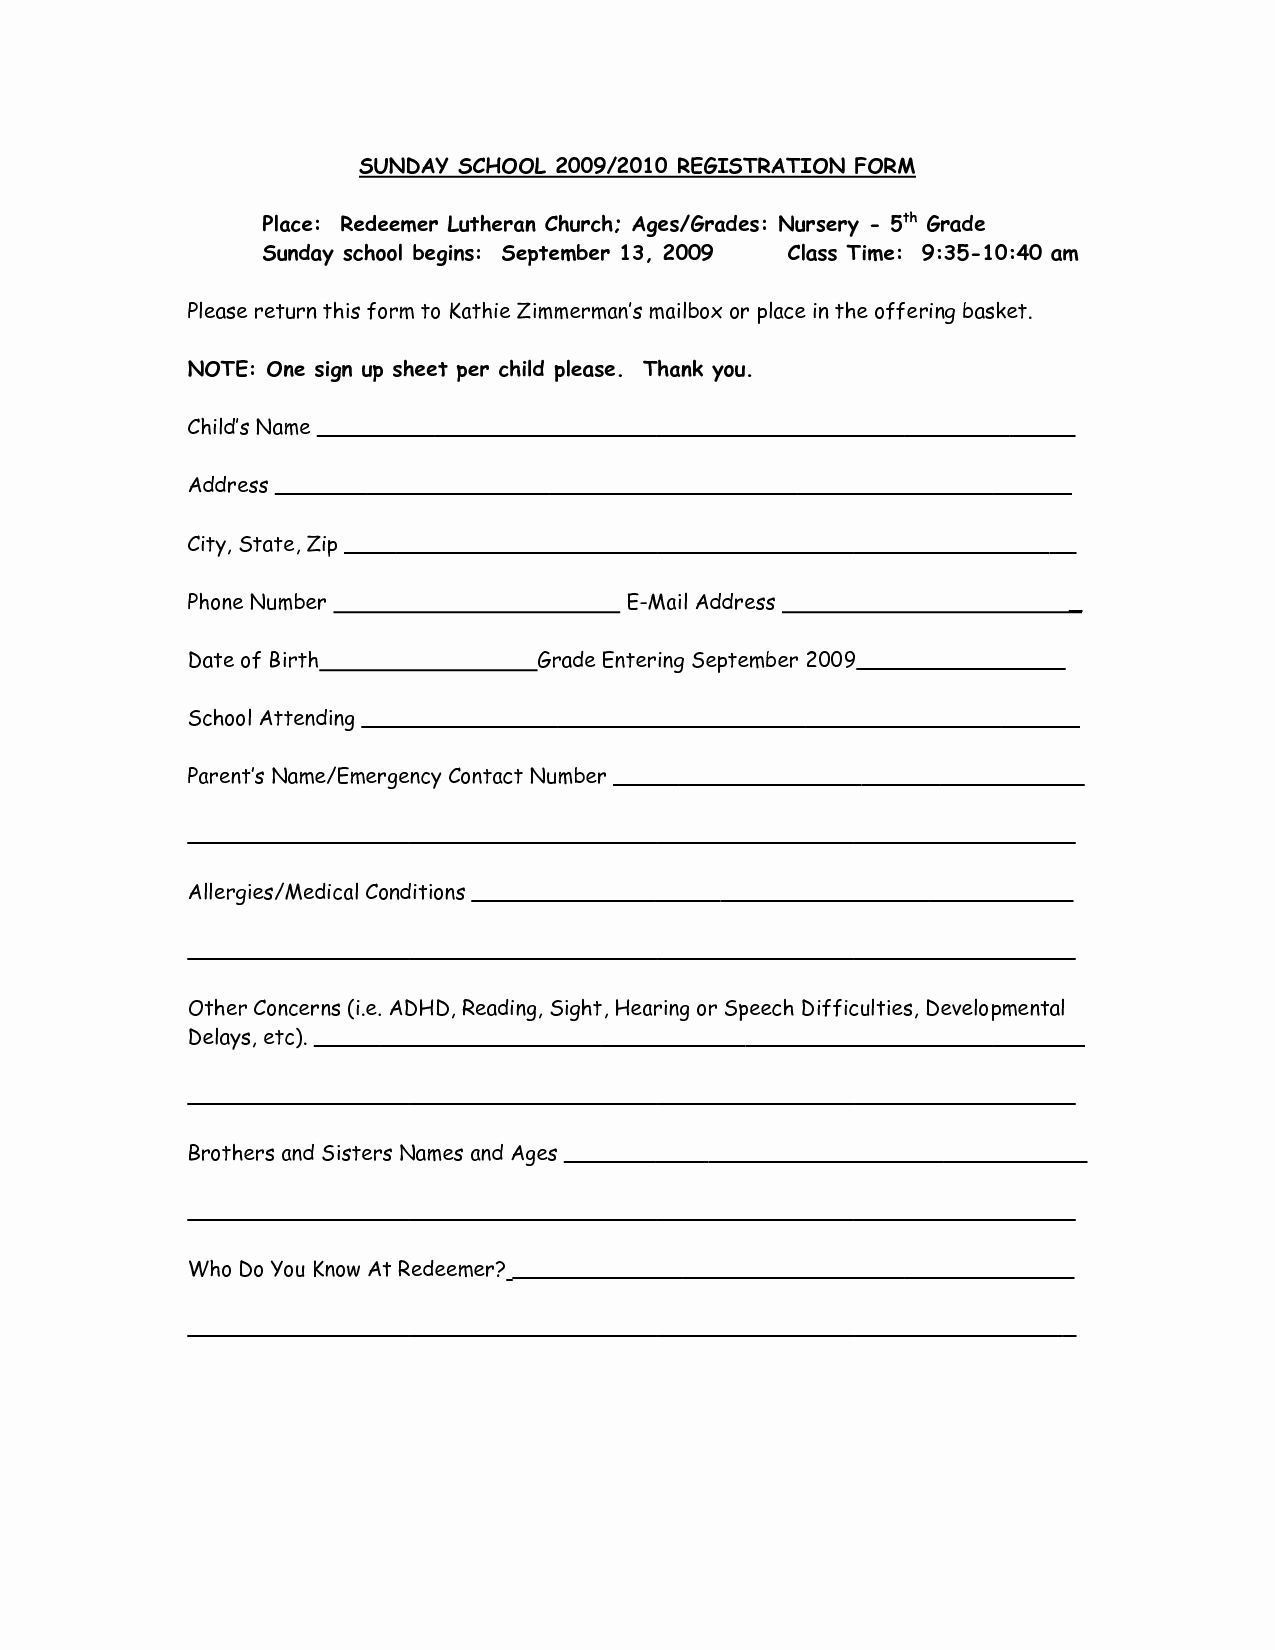 School Registration form Template Inspirational Church Nursery Registration form thenurseries